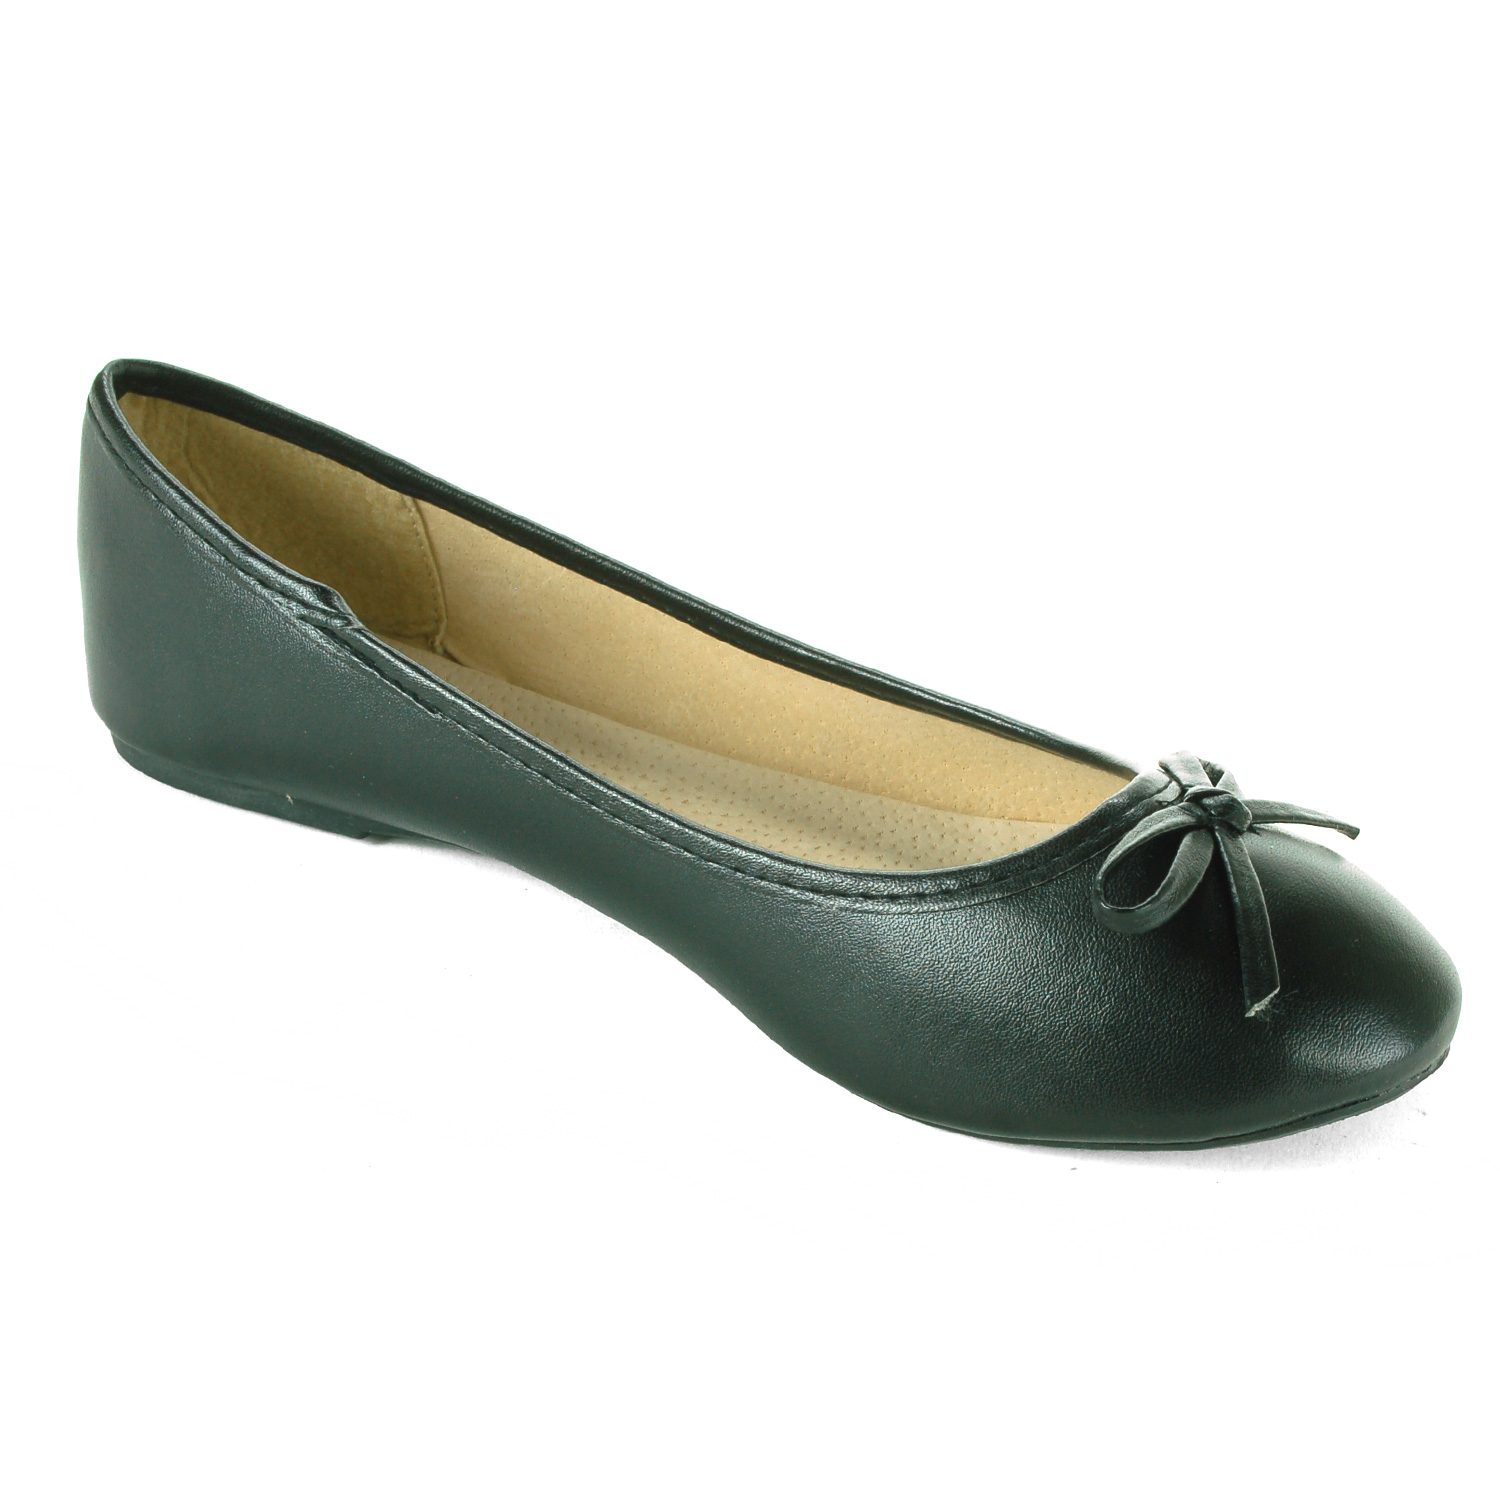 Crafted from the finest leather and canvas materials, our comfortable women's flats are versatile and built to last. Choose from a wide selection of women's flats, from comfy and casual moccasins, loafers and slip-on sneakers to sleek and stylish ballet flats, dress flats and hidden wedge flats.